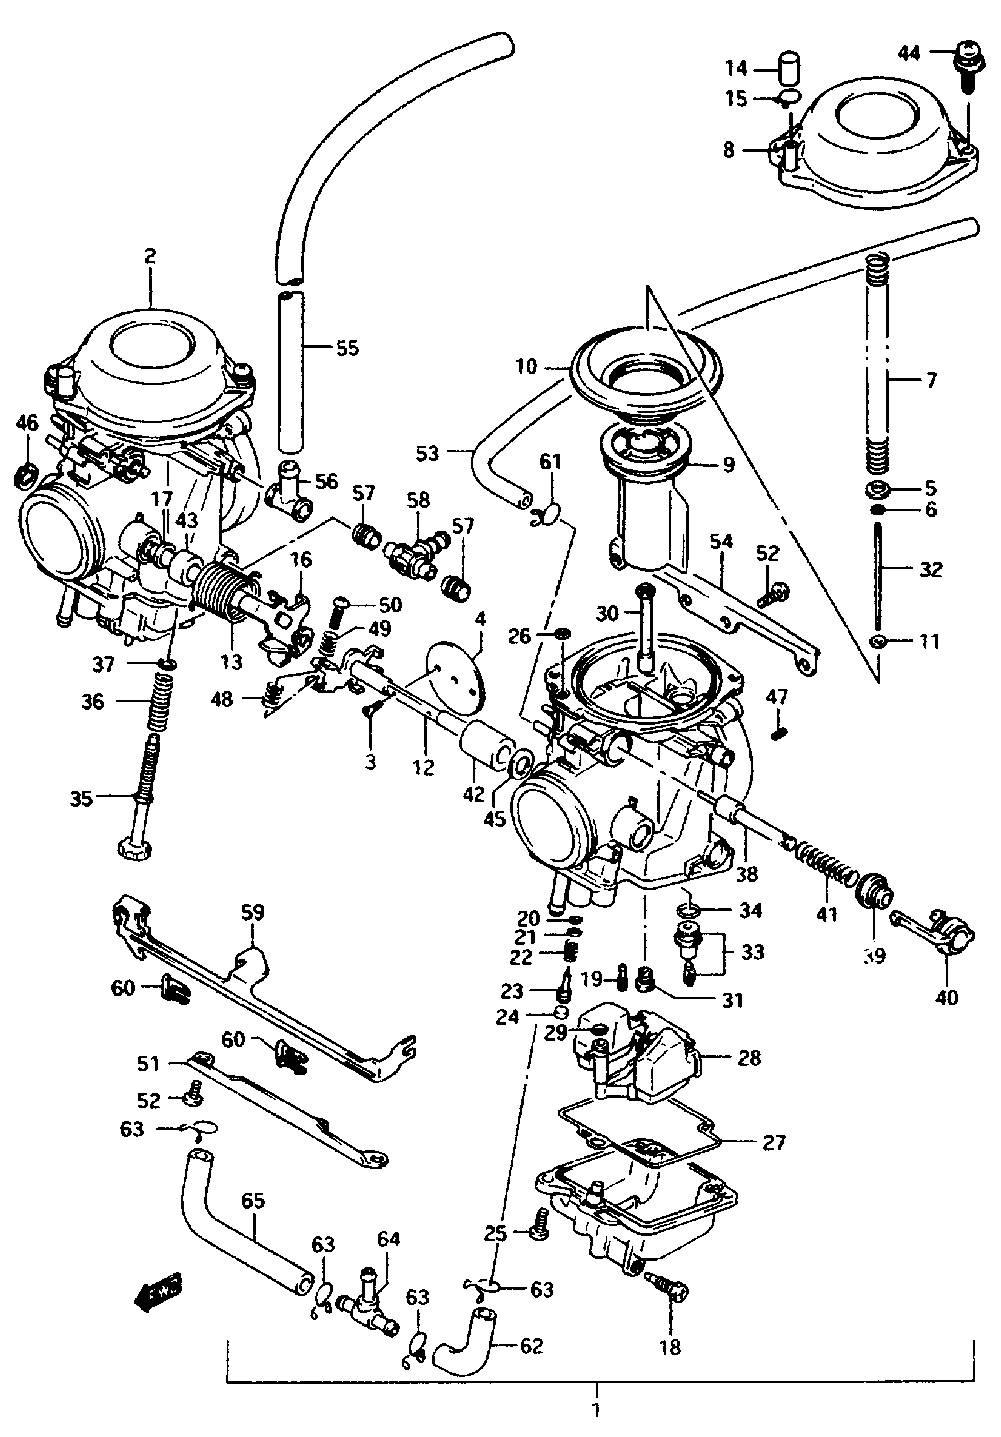 suzuki gsx f 600 engine diagram suzuki katana 600 fuel